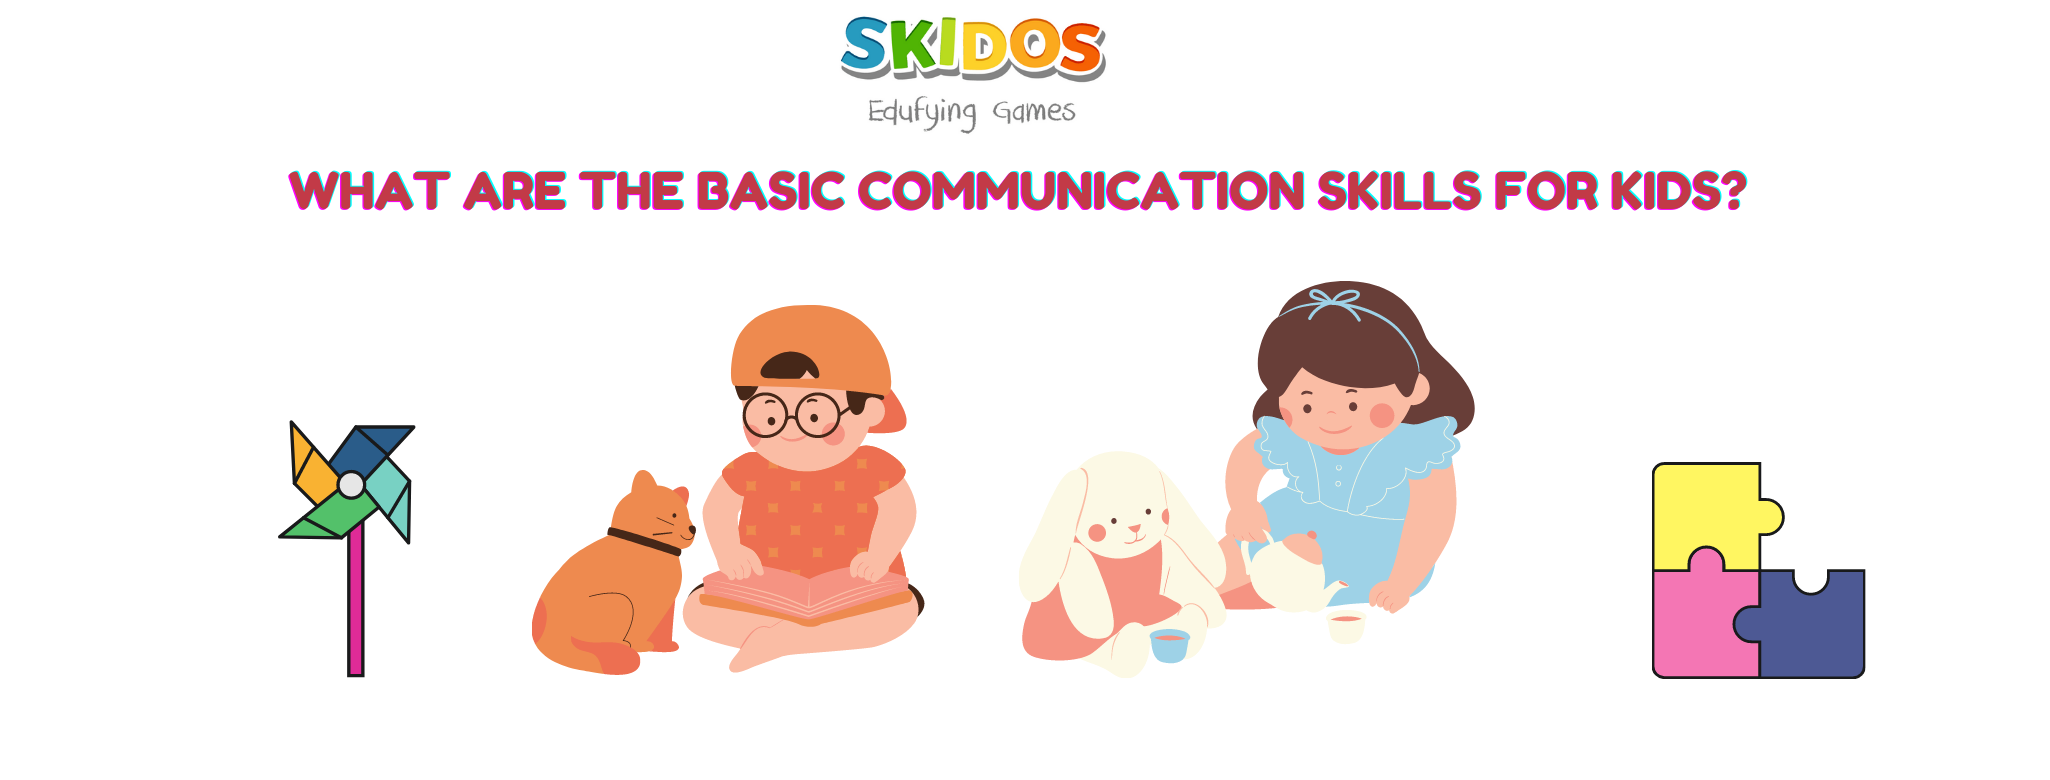 What are the basic communication skills for kids